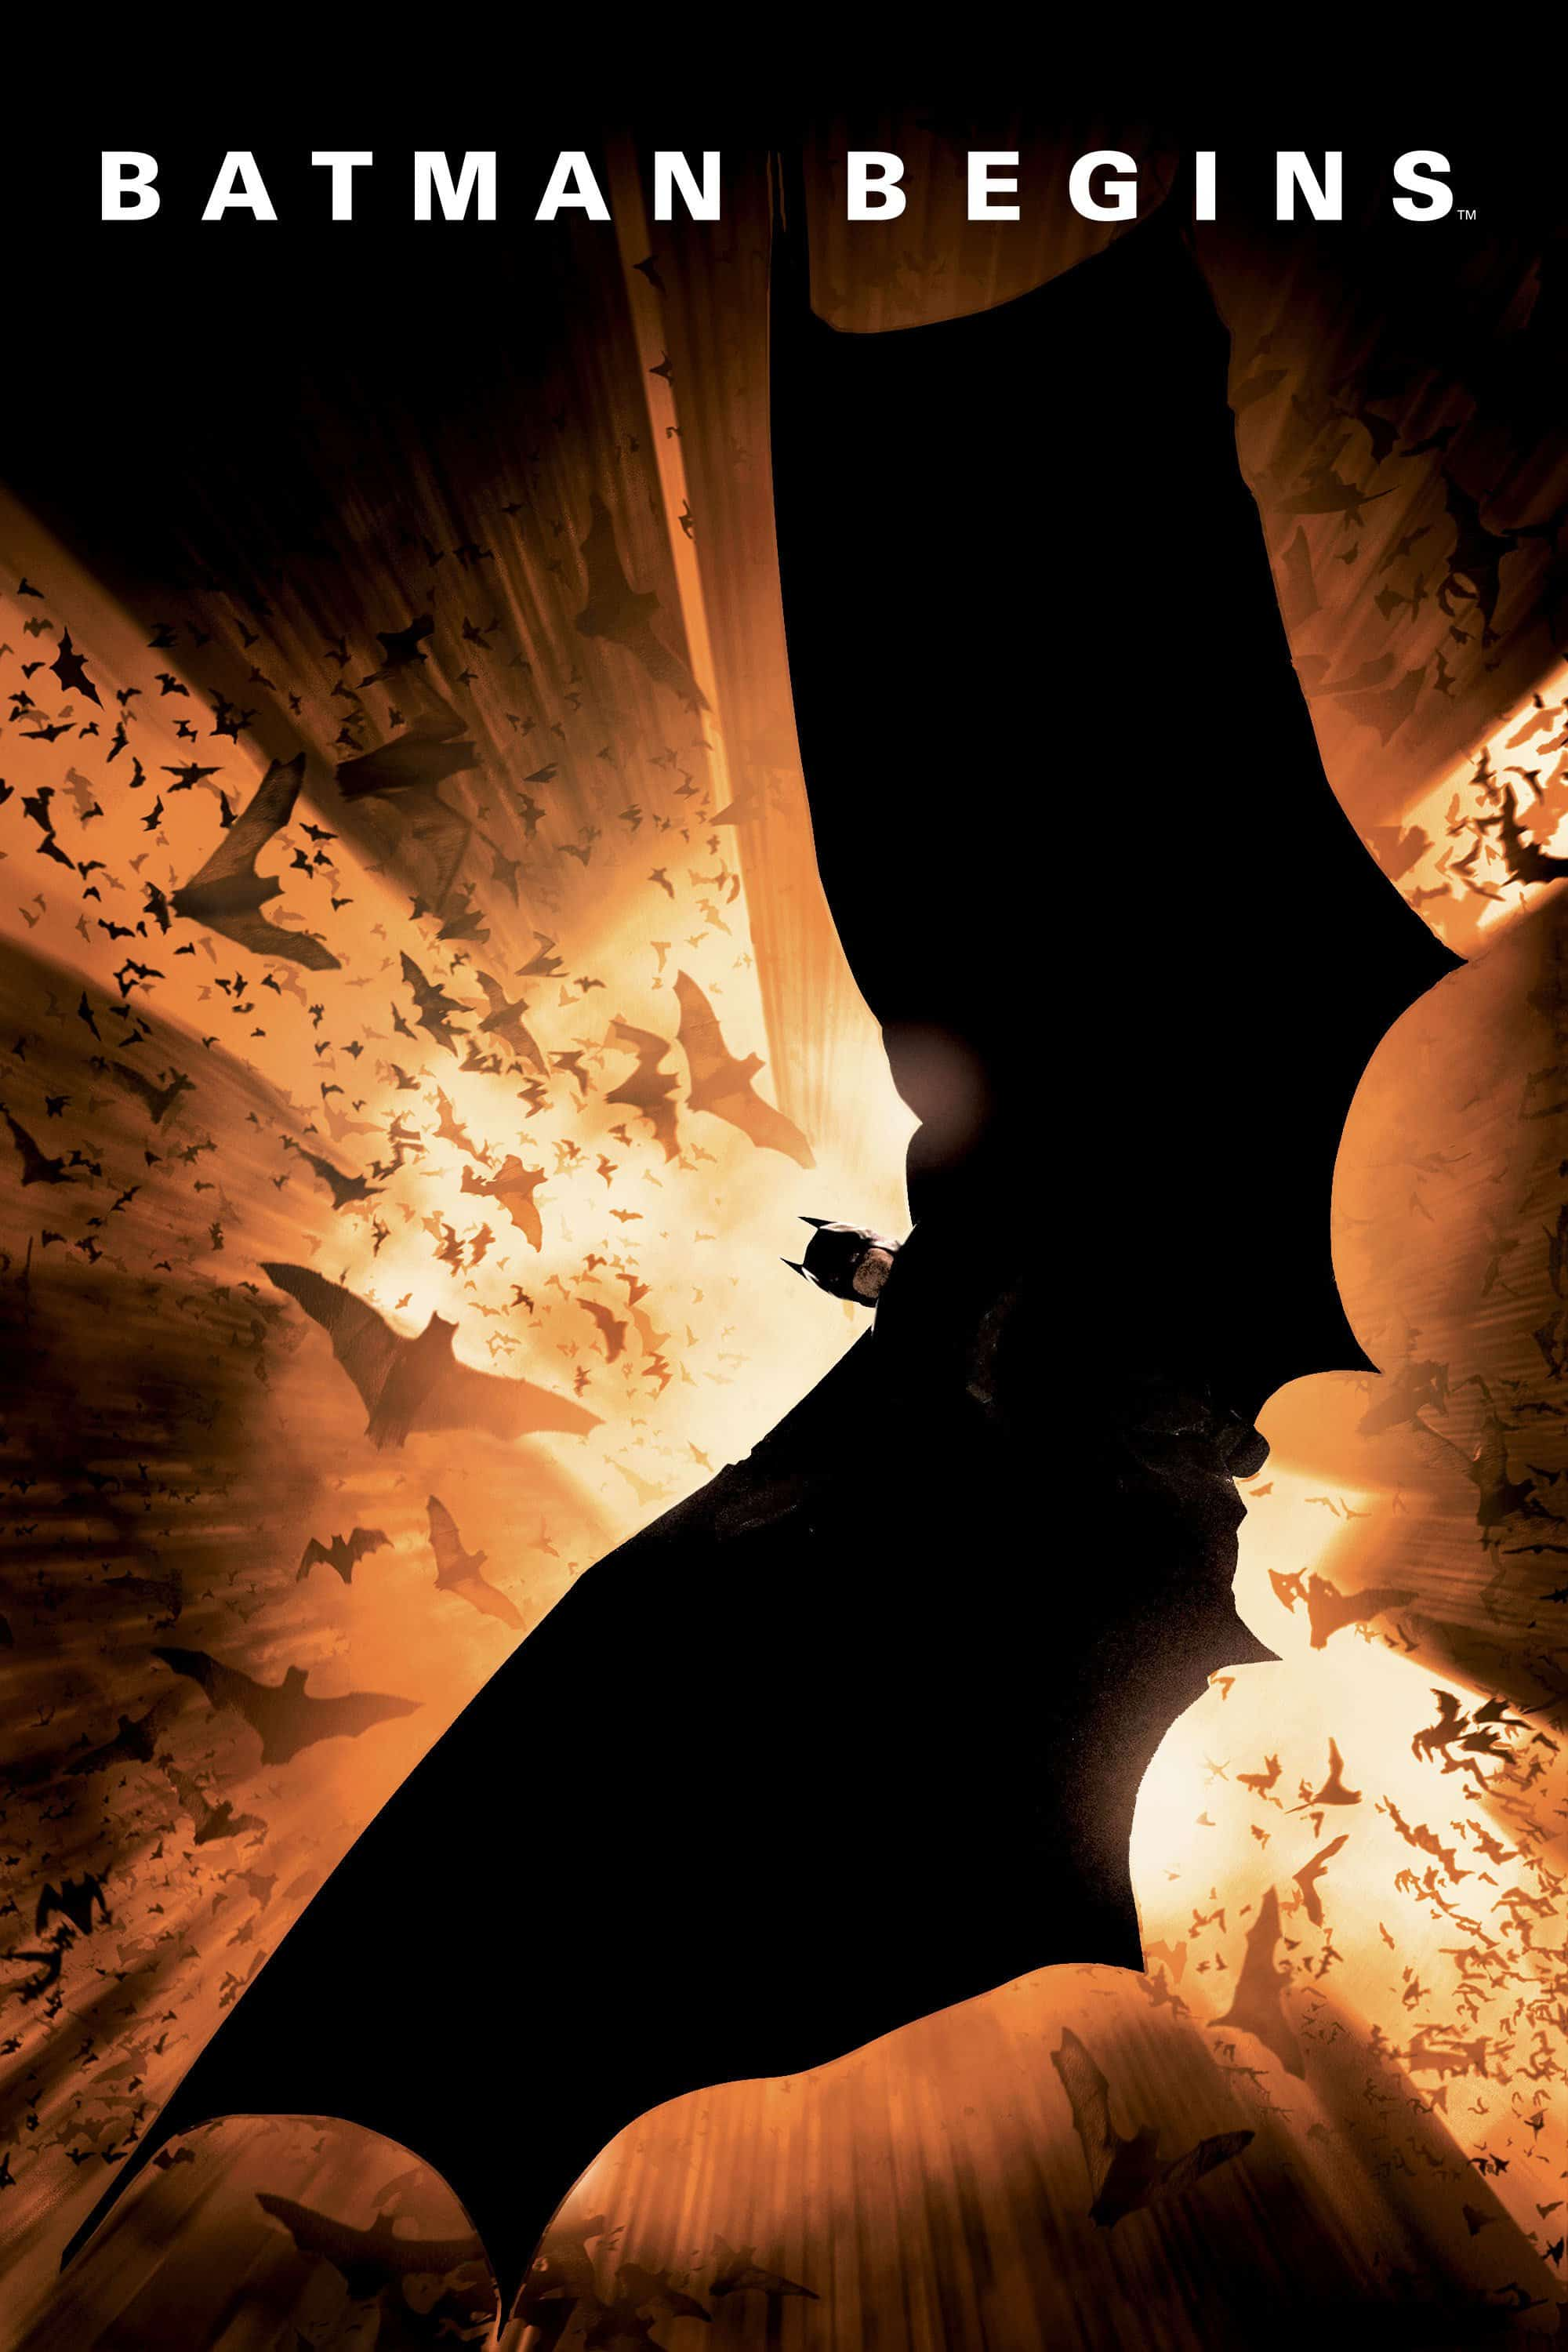 Batman Begins, 2005